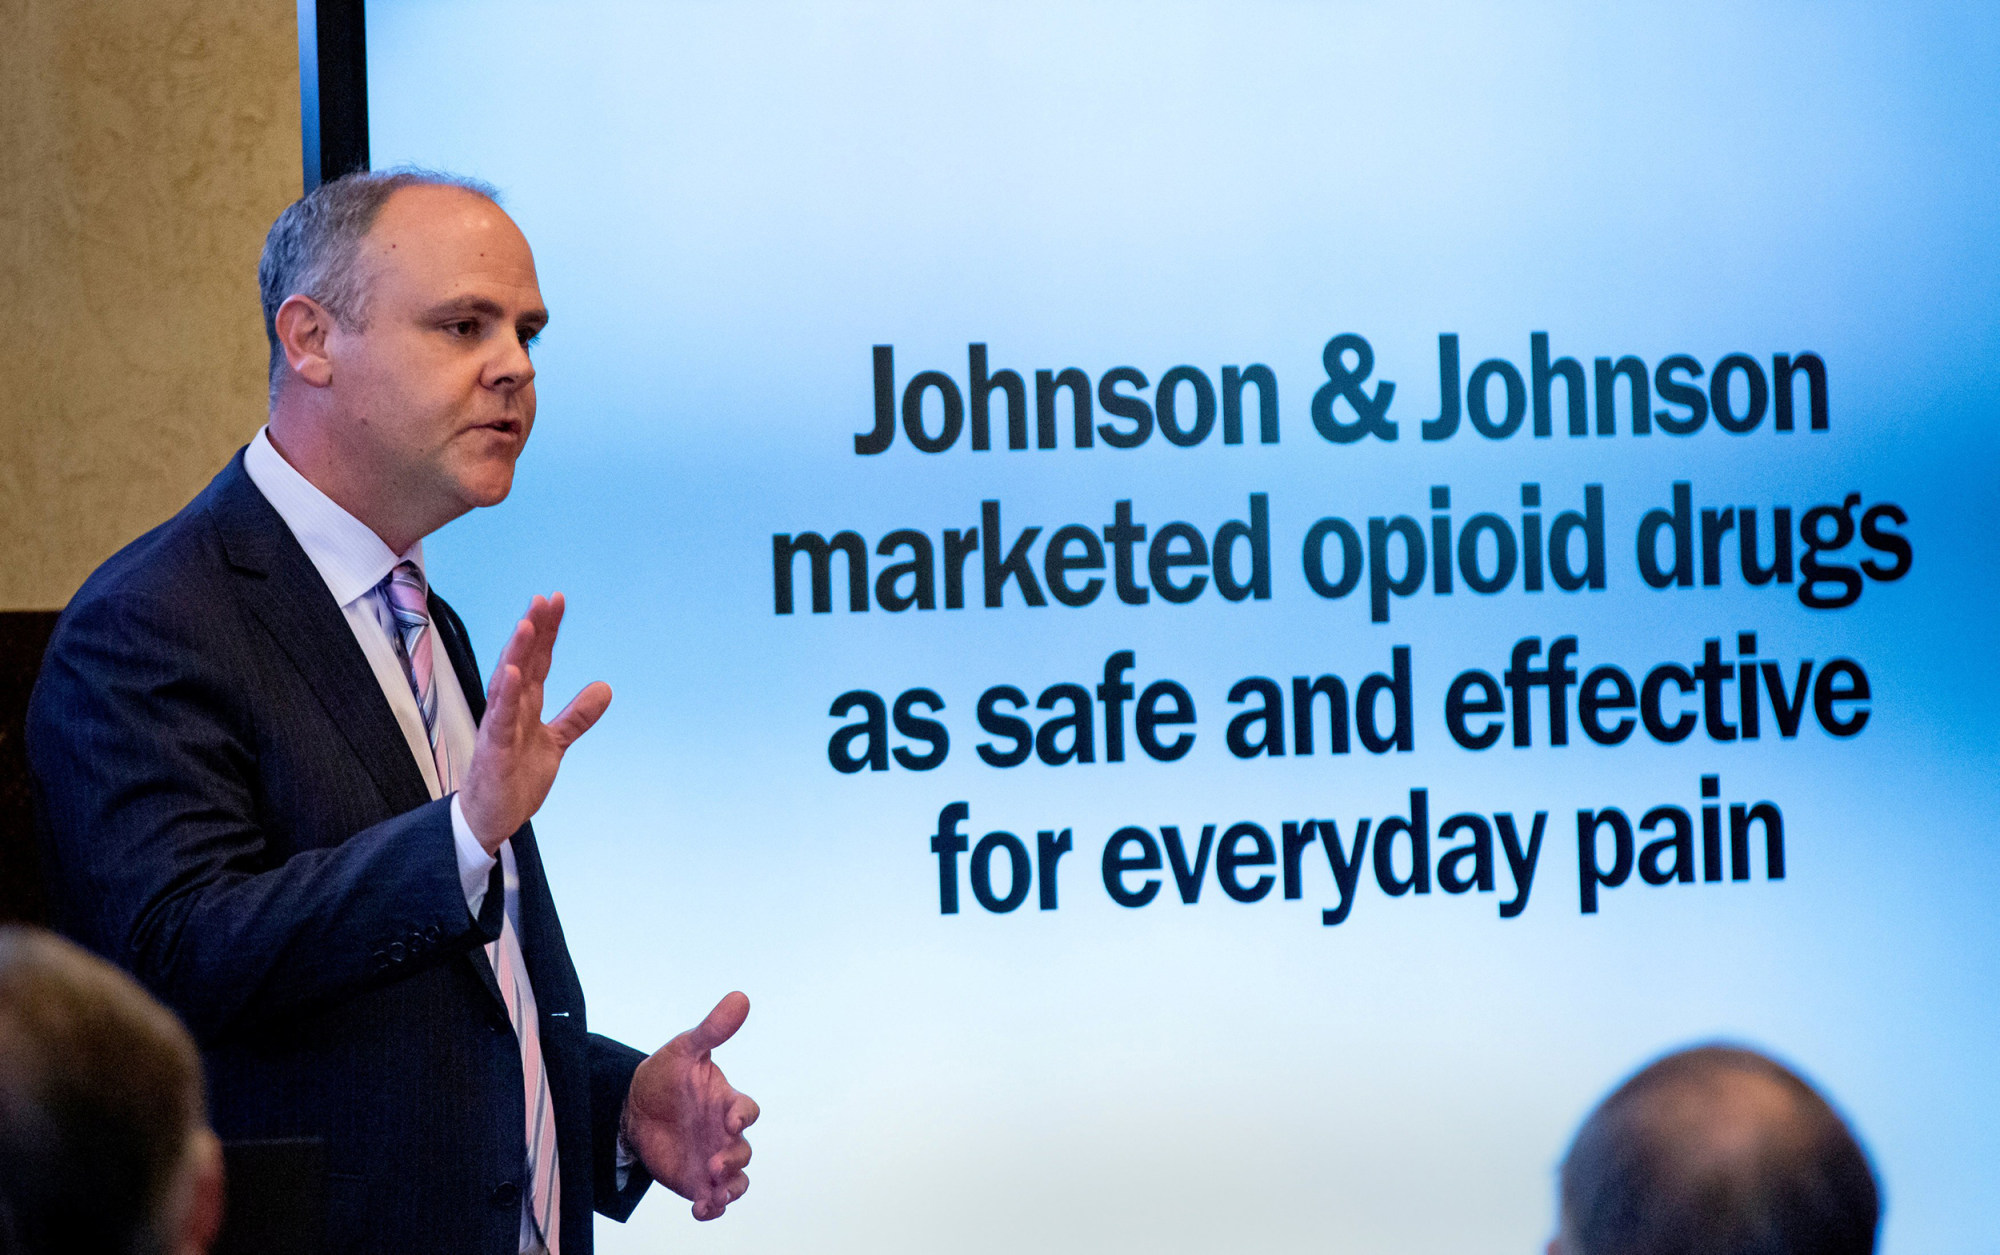 OK claims J&J's greed helped fuel opioid crisis